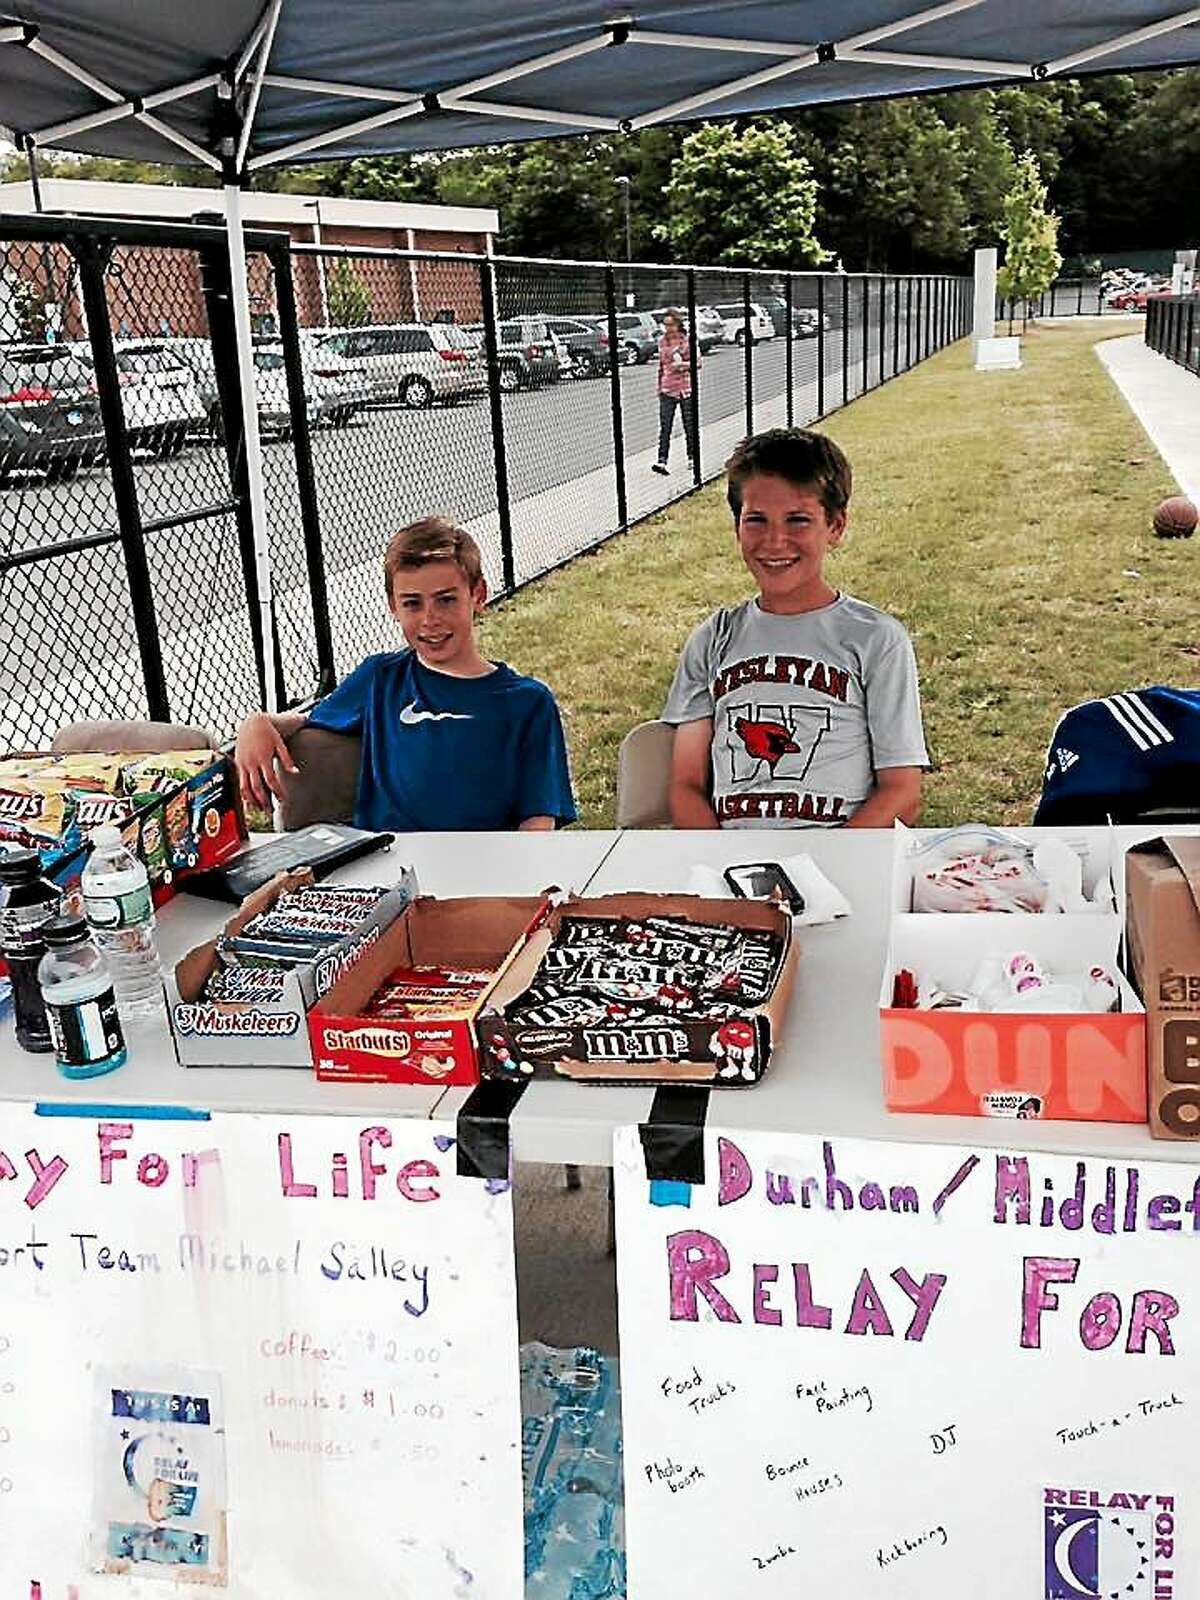 Michael and Jason Salley spent time fundraising with their teams at the Coginchaug High School track on a recent Saturday morning.